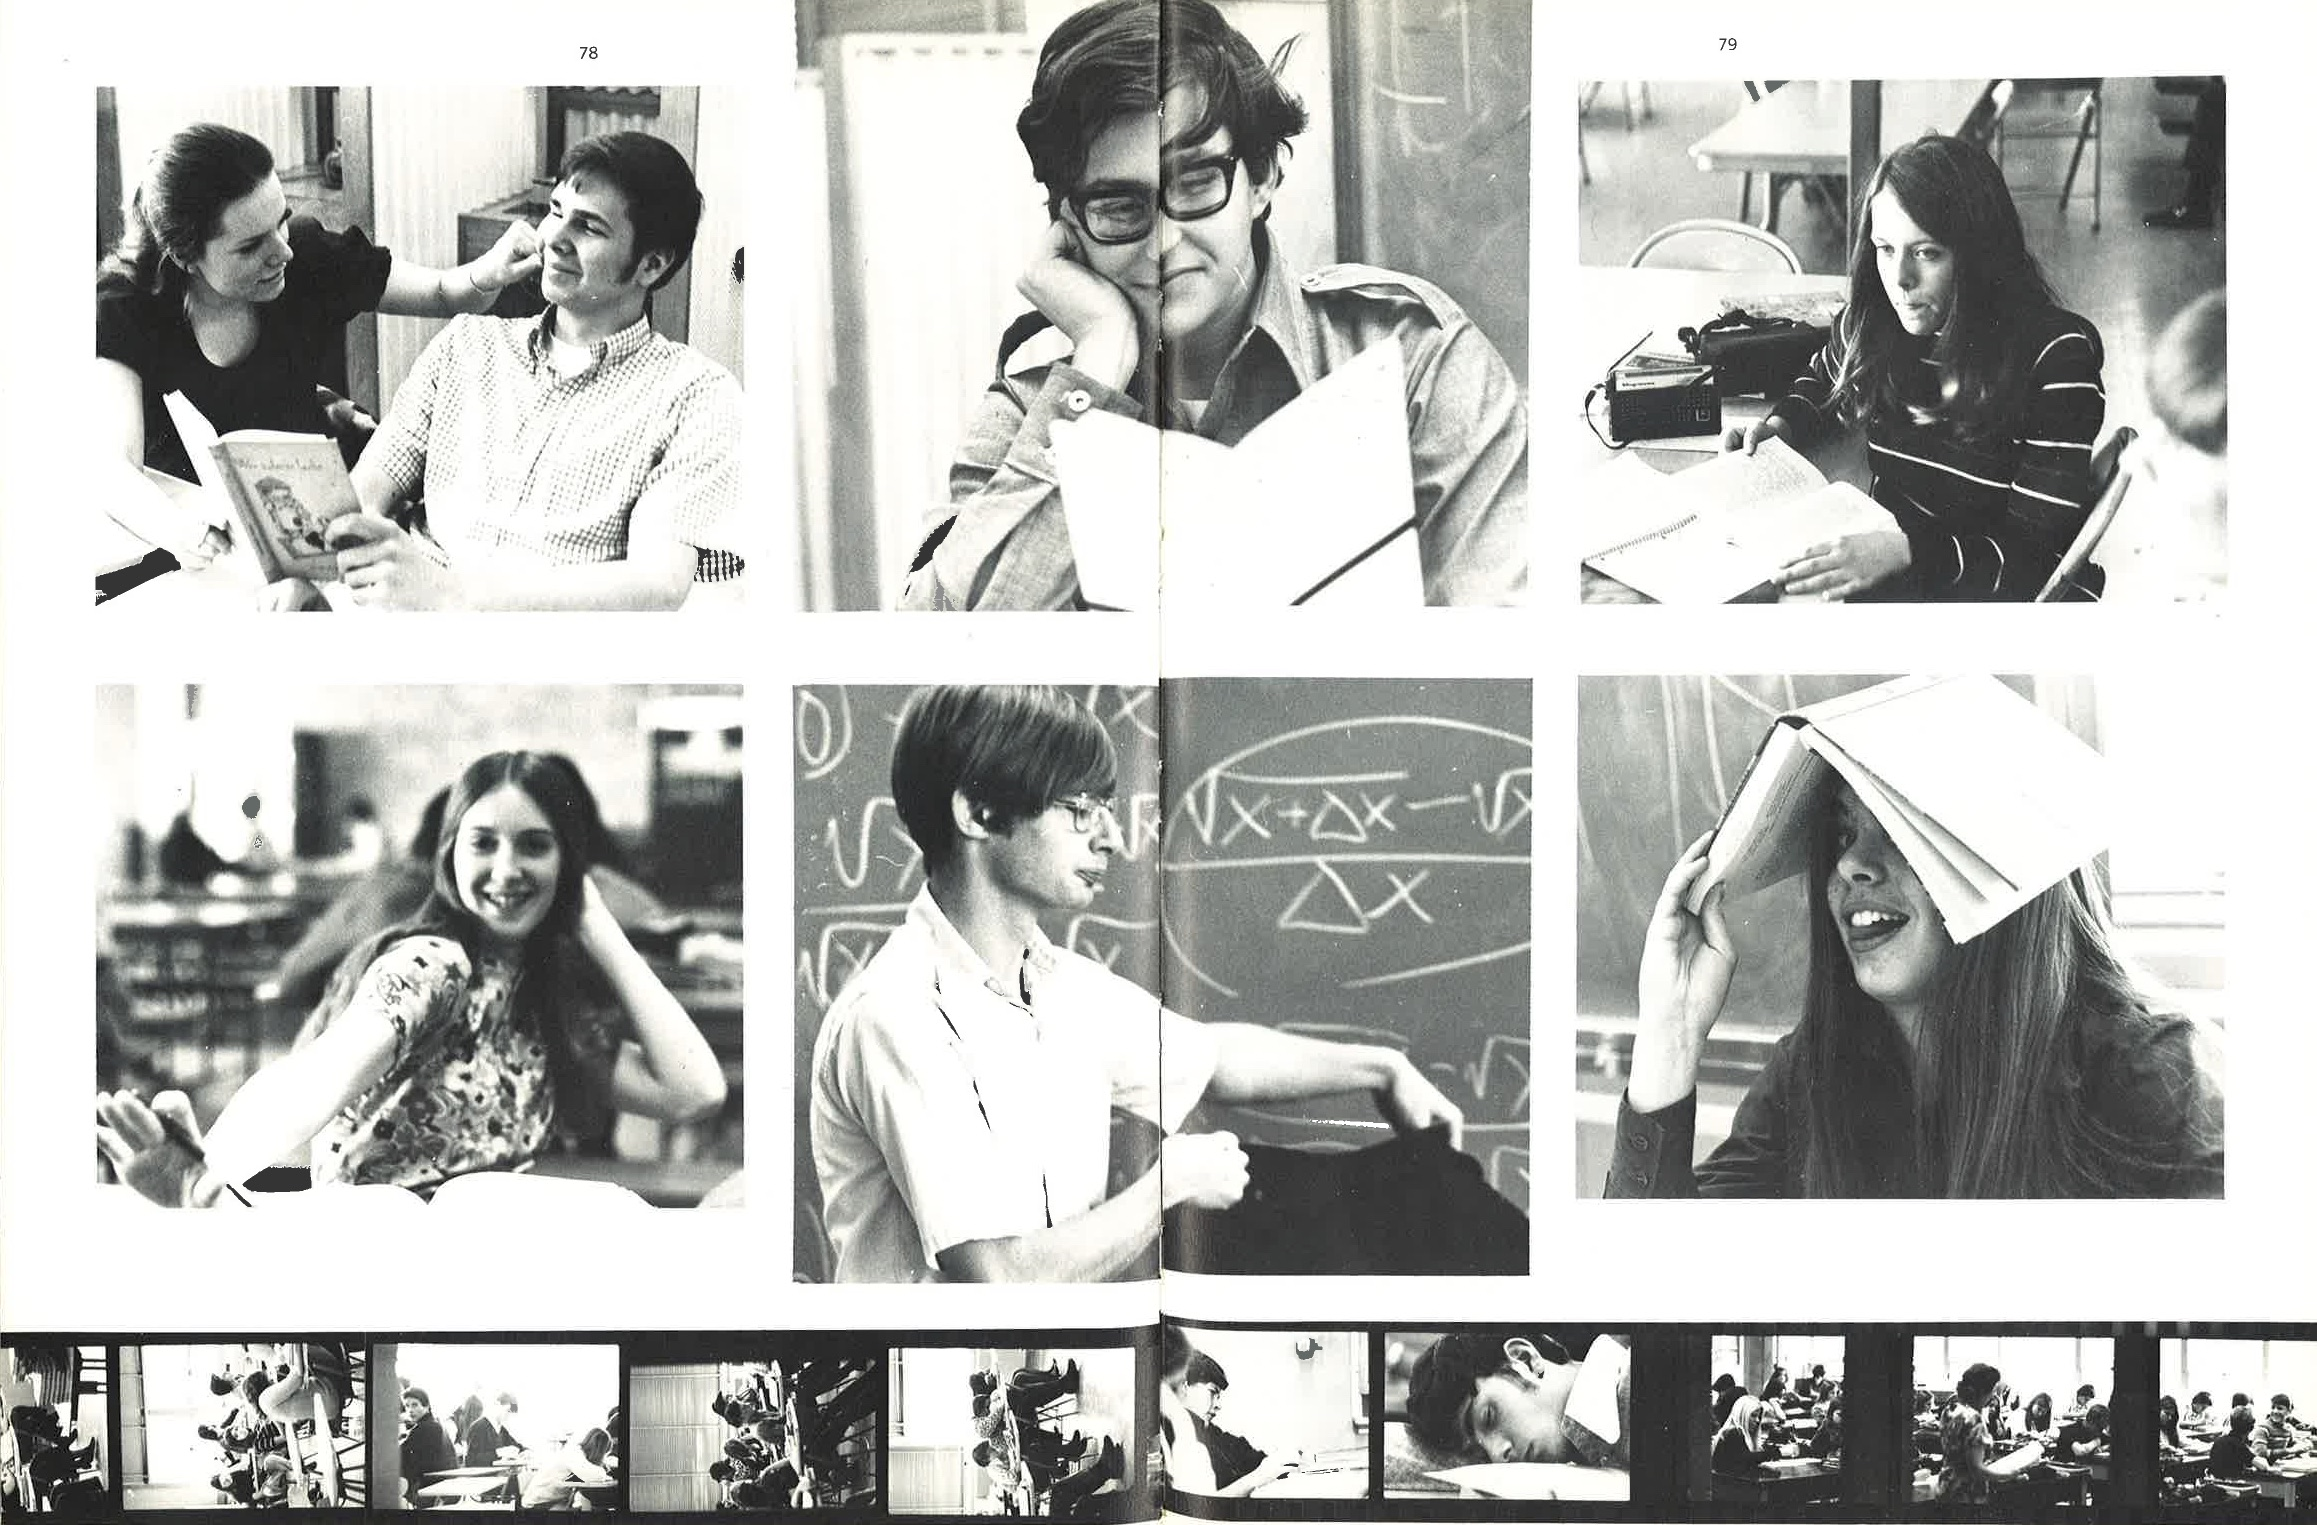 1972_Yearbook_78-79.jpg